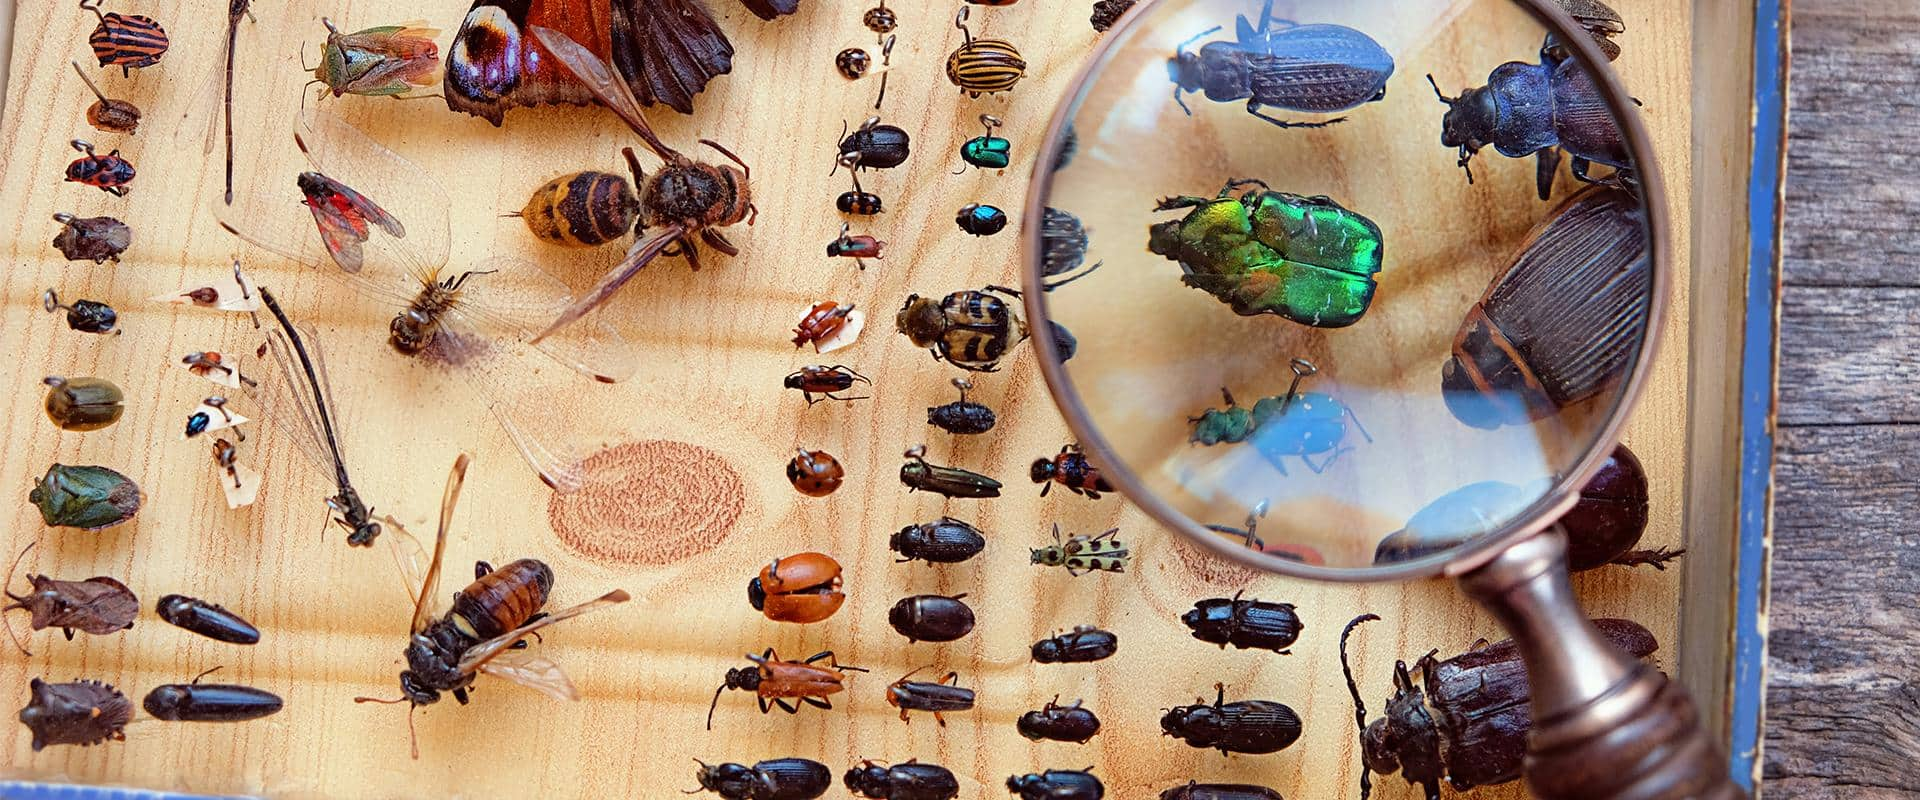 an entomology collection with a magnifying glass hovering over it